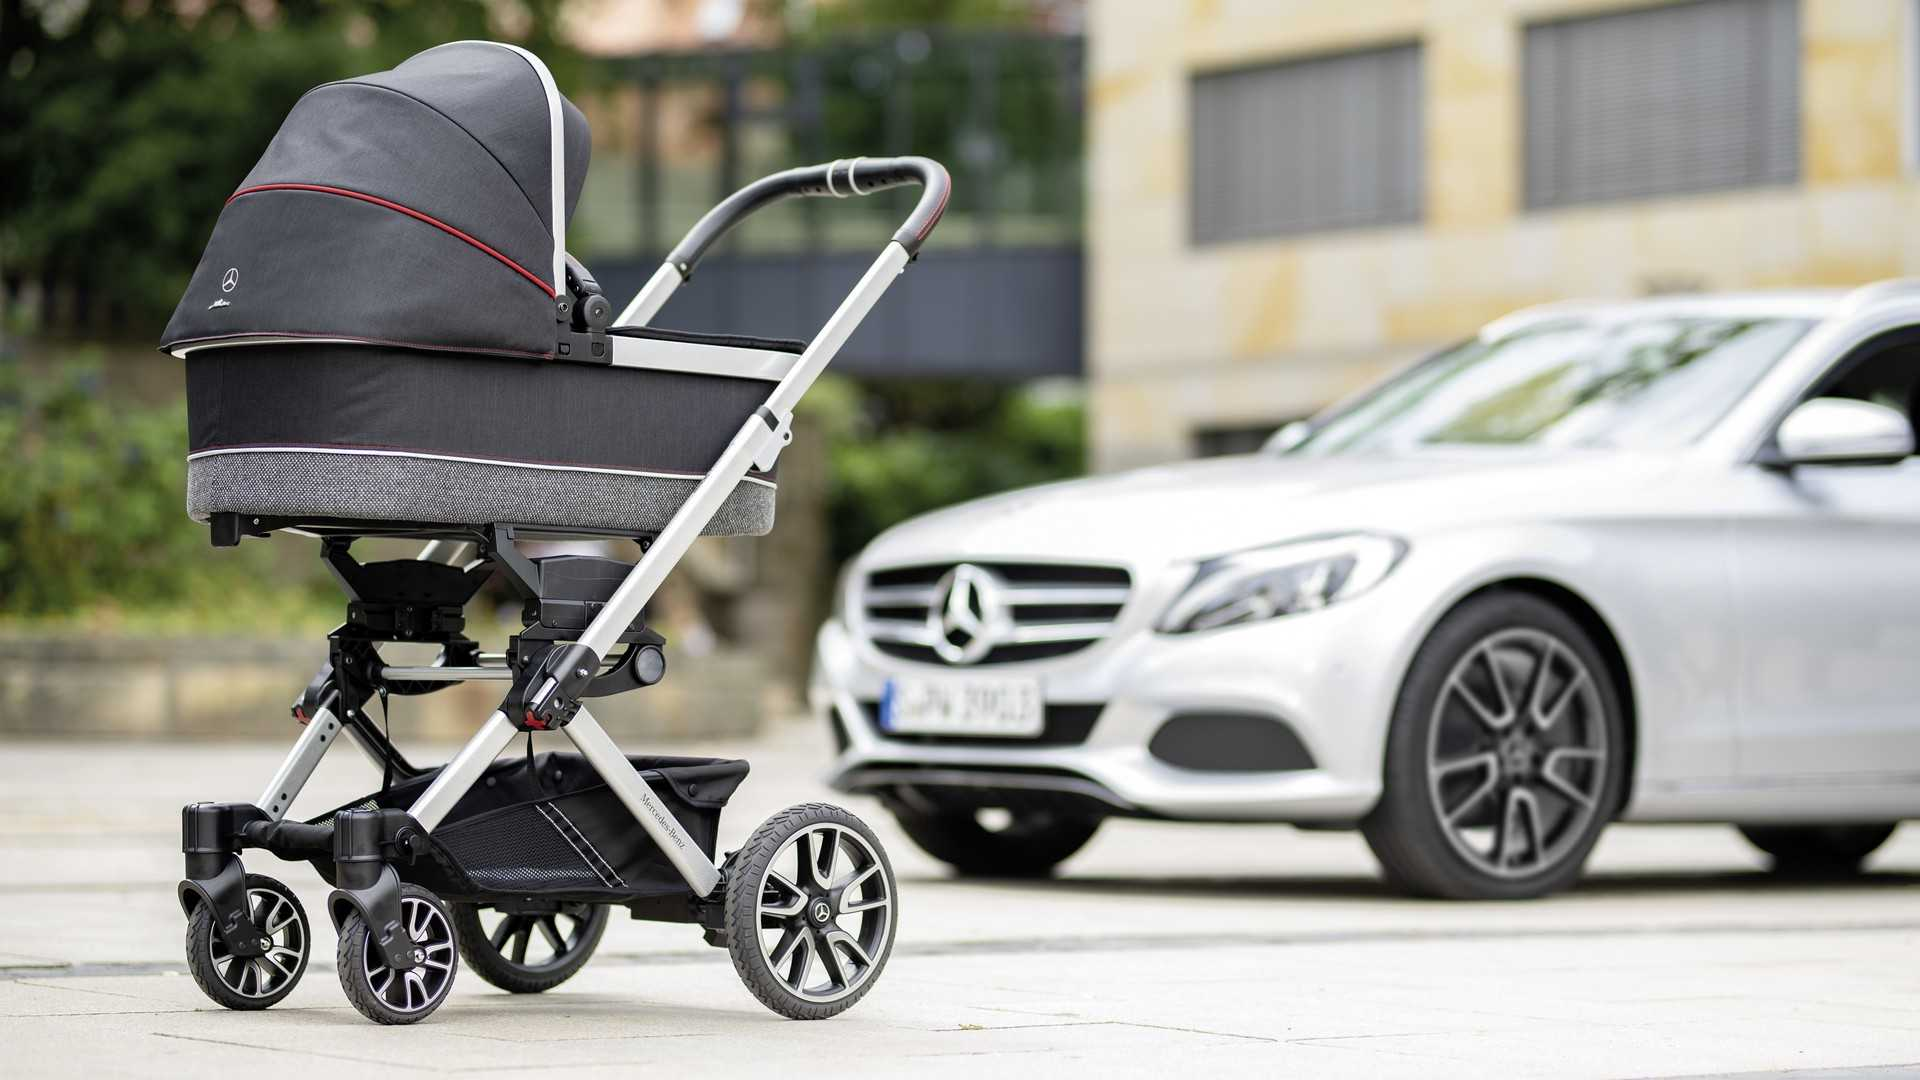 The Mercedes Of Baby Strollers Rides On C-Class AMG Wheels